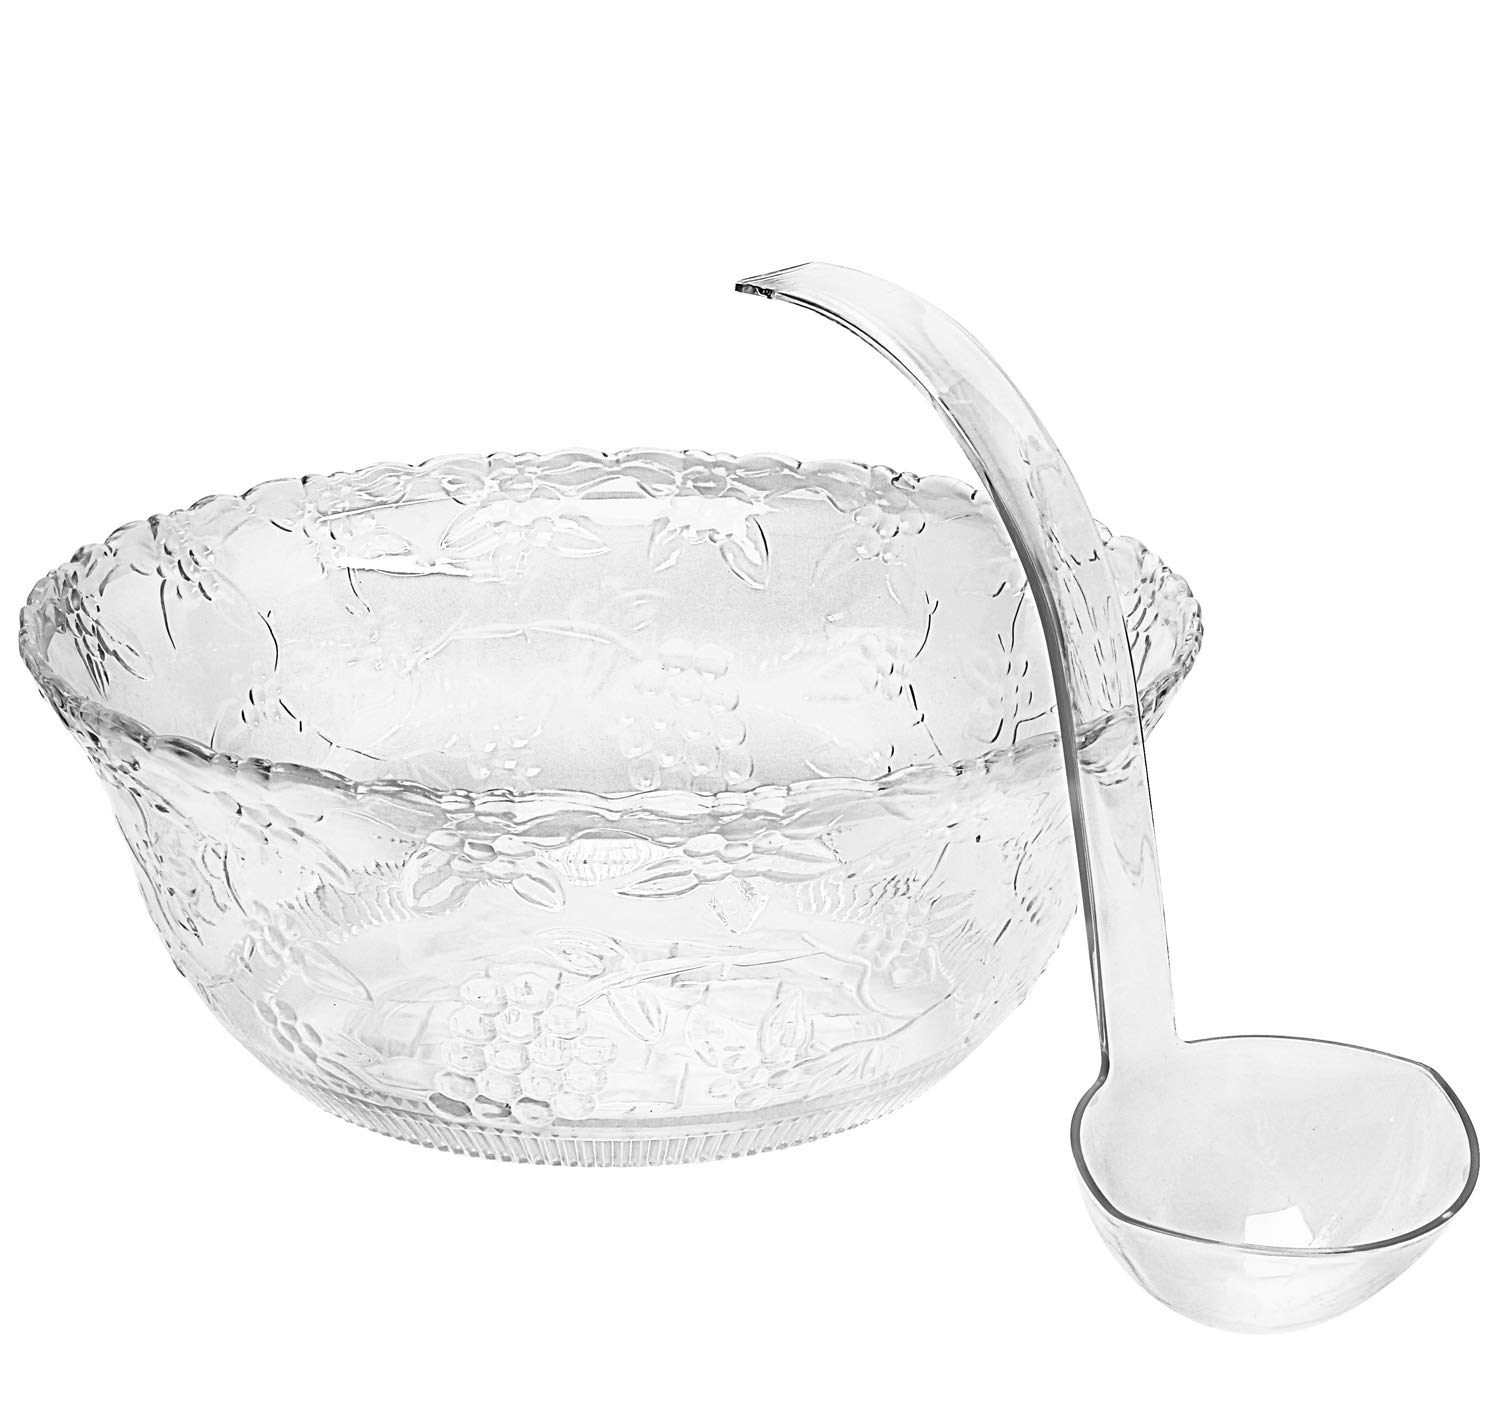 Heavyweight Clear Plastic 2 Gallon Punch Bowl With 5 OZ Plastic Serving Ladle, Embroidered Design 8 Quart Serving Bowl.